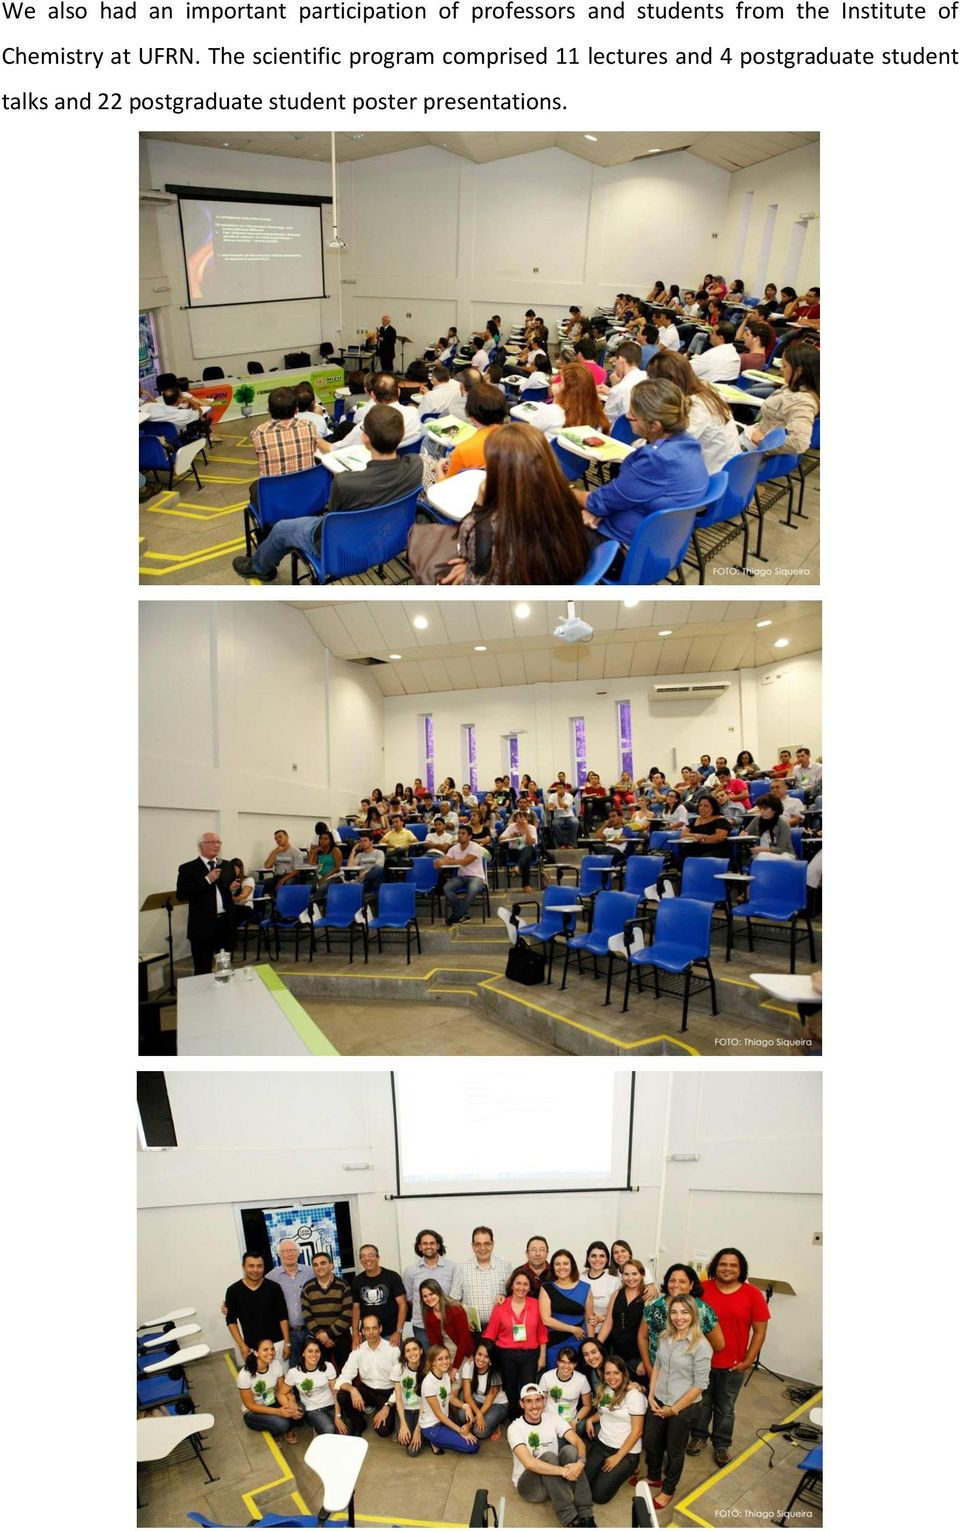 The scientific program comprised 11 lectures and 4